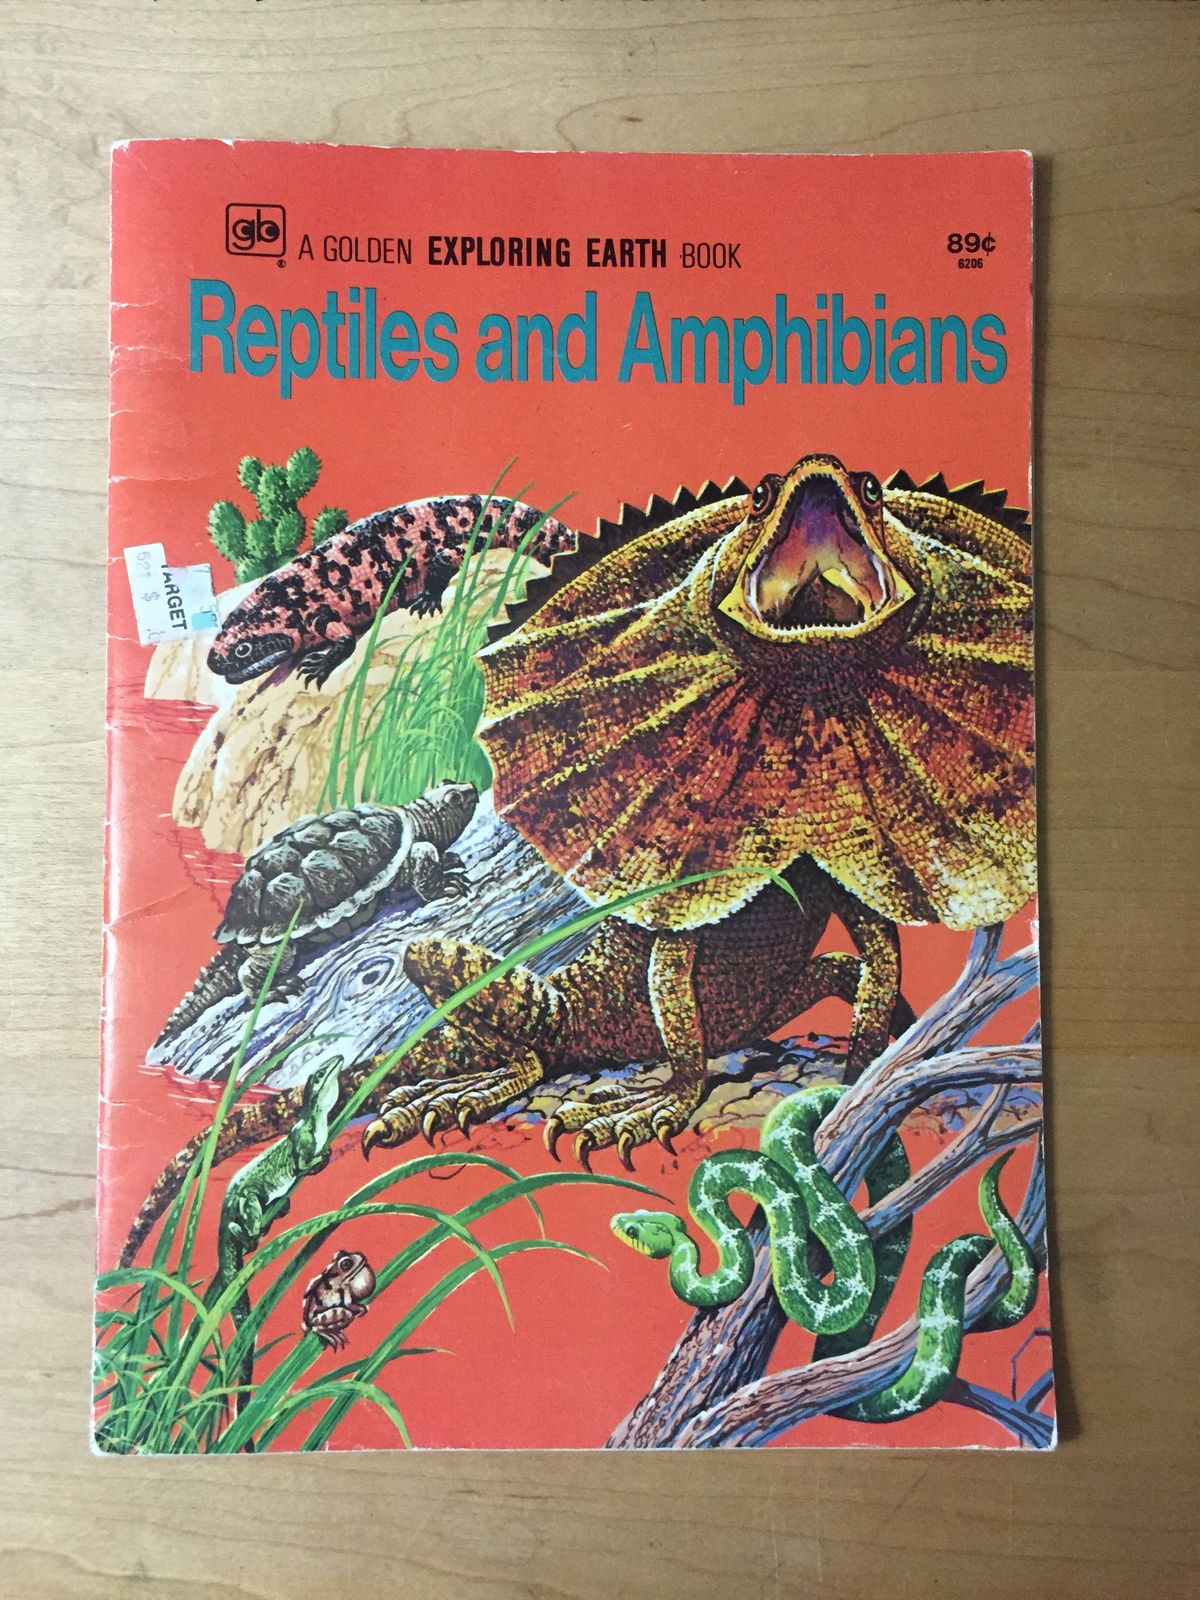 Vintage 1974 Reptiles and Amphibians Golden Exploring Earth Book